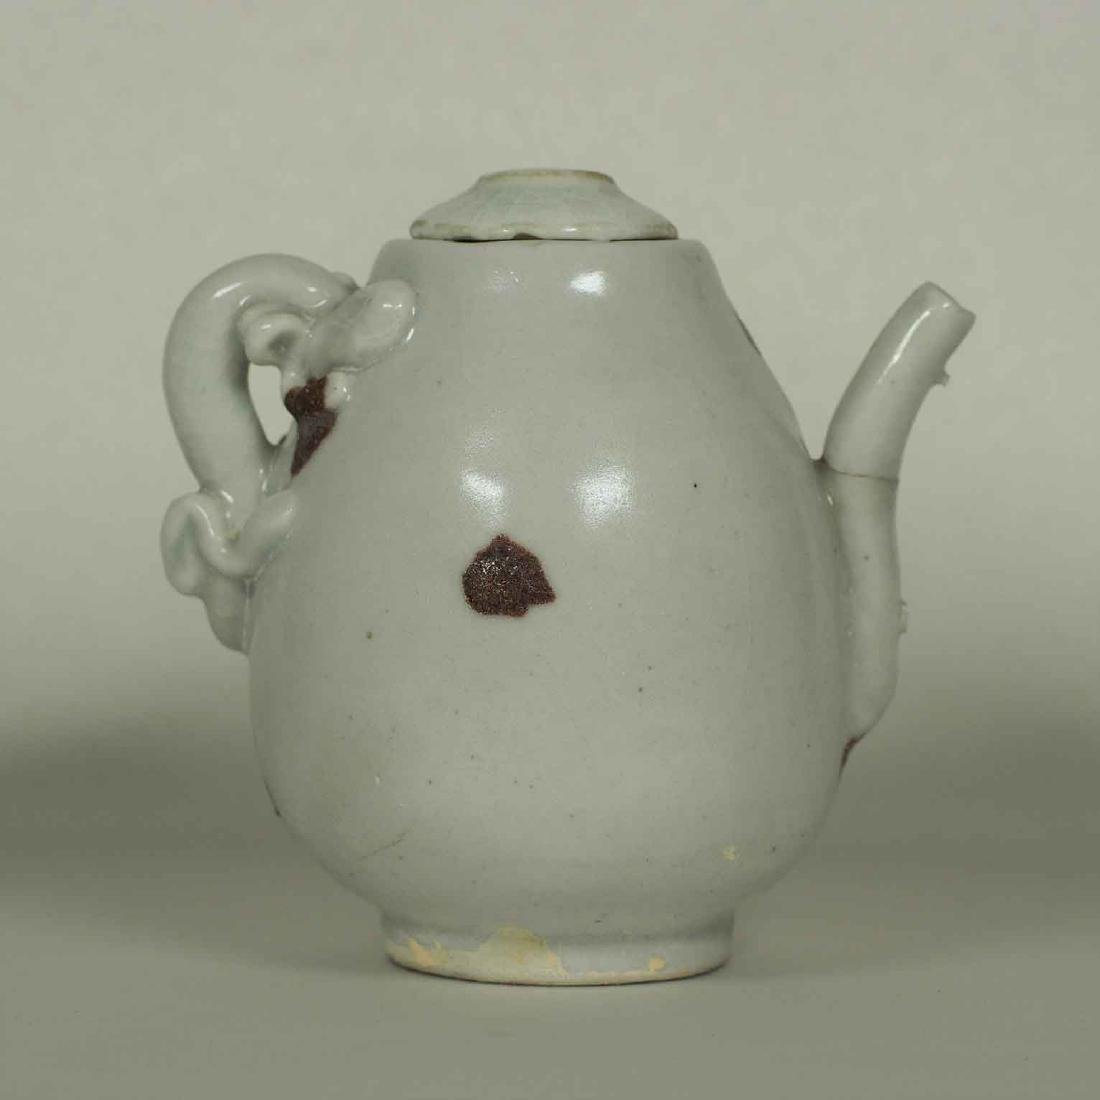 Ewer with Dragon Handle and Brown Spots, Yuan Dynasty